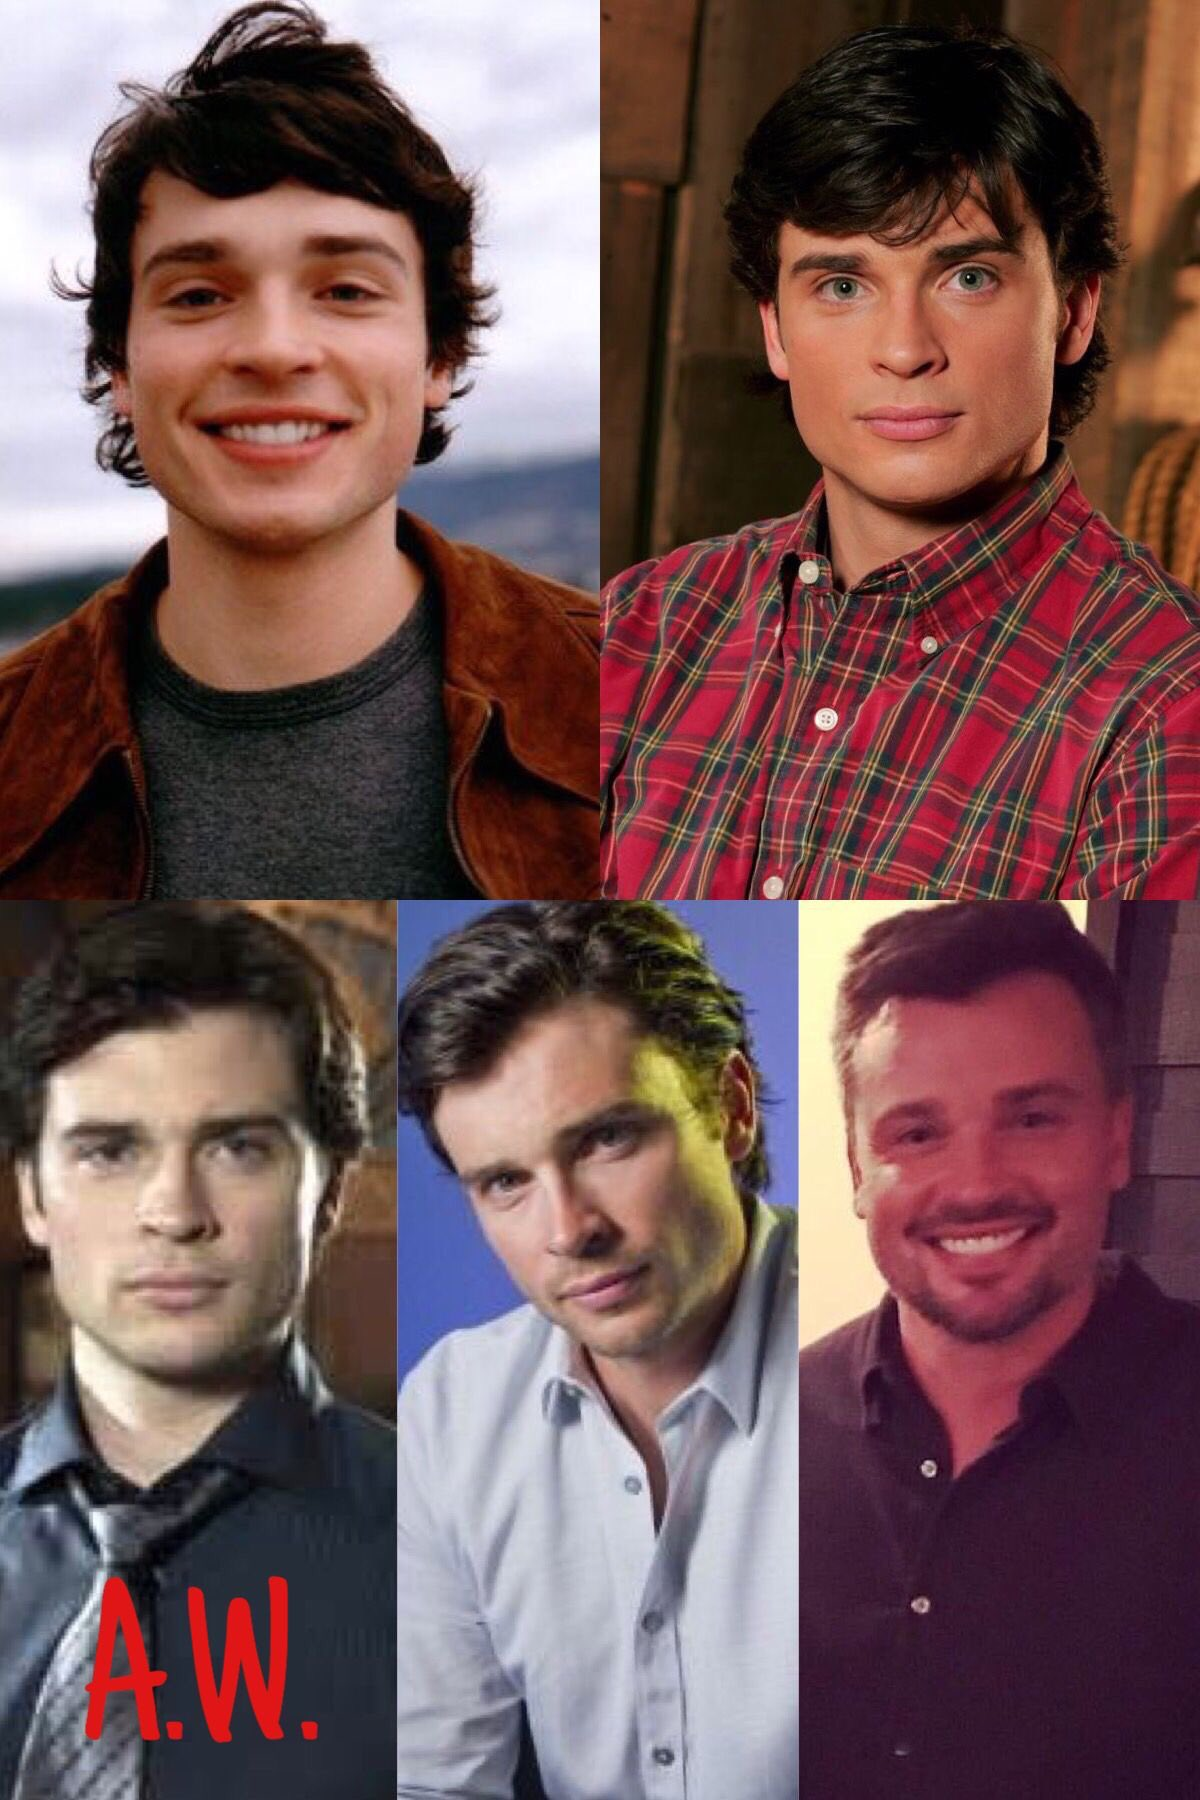 Love this sexy and talented man #TomWelling ゚リペリペリペリペリペリリ゚リリ゚リリ゚リリ゚リリ¬ンᄂᄌマ¬ンᄂᄌマ¬ンᄂᄌマ¬ンᄂᄌマ¬ンᄂᄌマ゚メピメピメピメピメピヤᆬ゚ヤᆬ゚ヤᆬ゚ヤᆬ゚ヤᆬ https://t.co/Y4zN1kmx4E